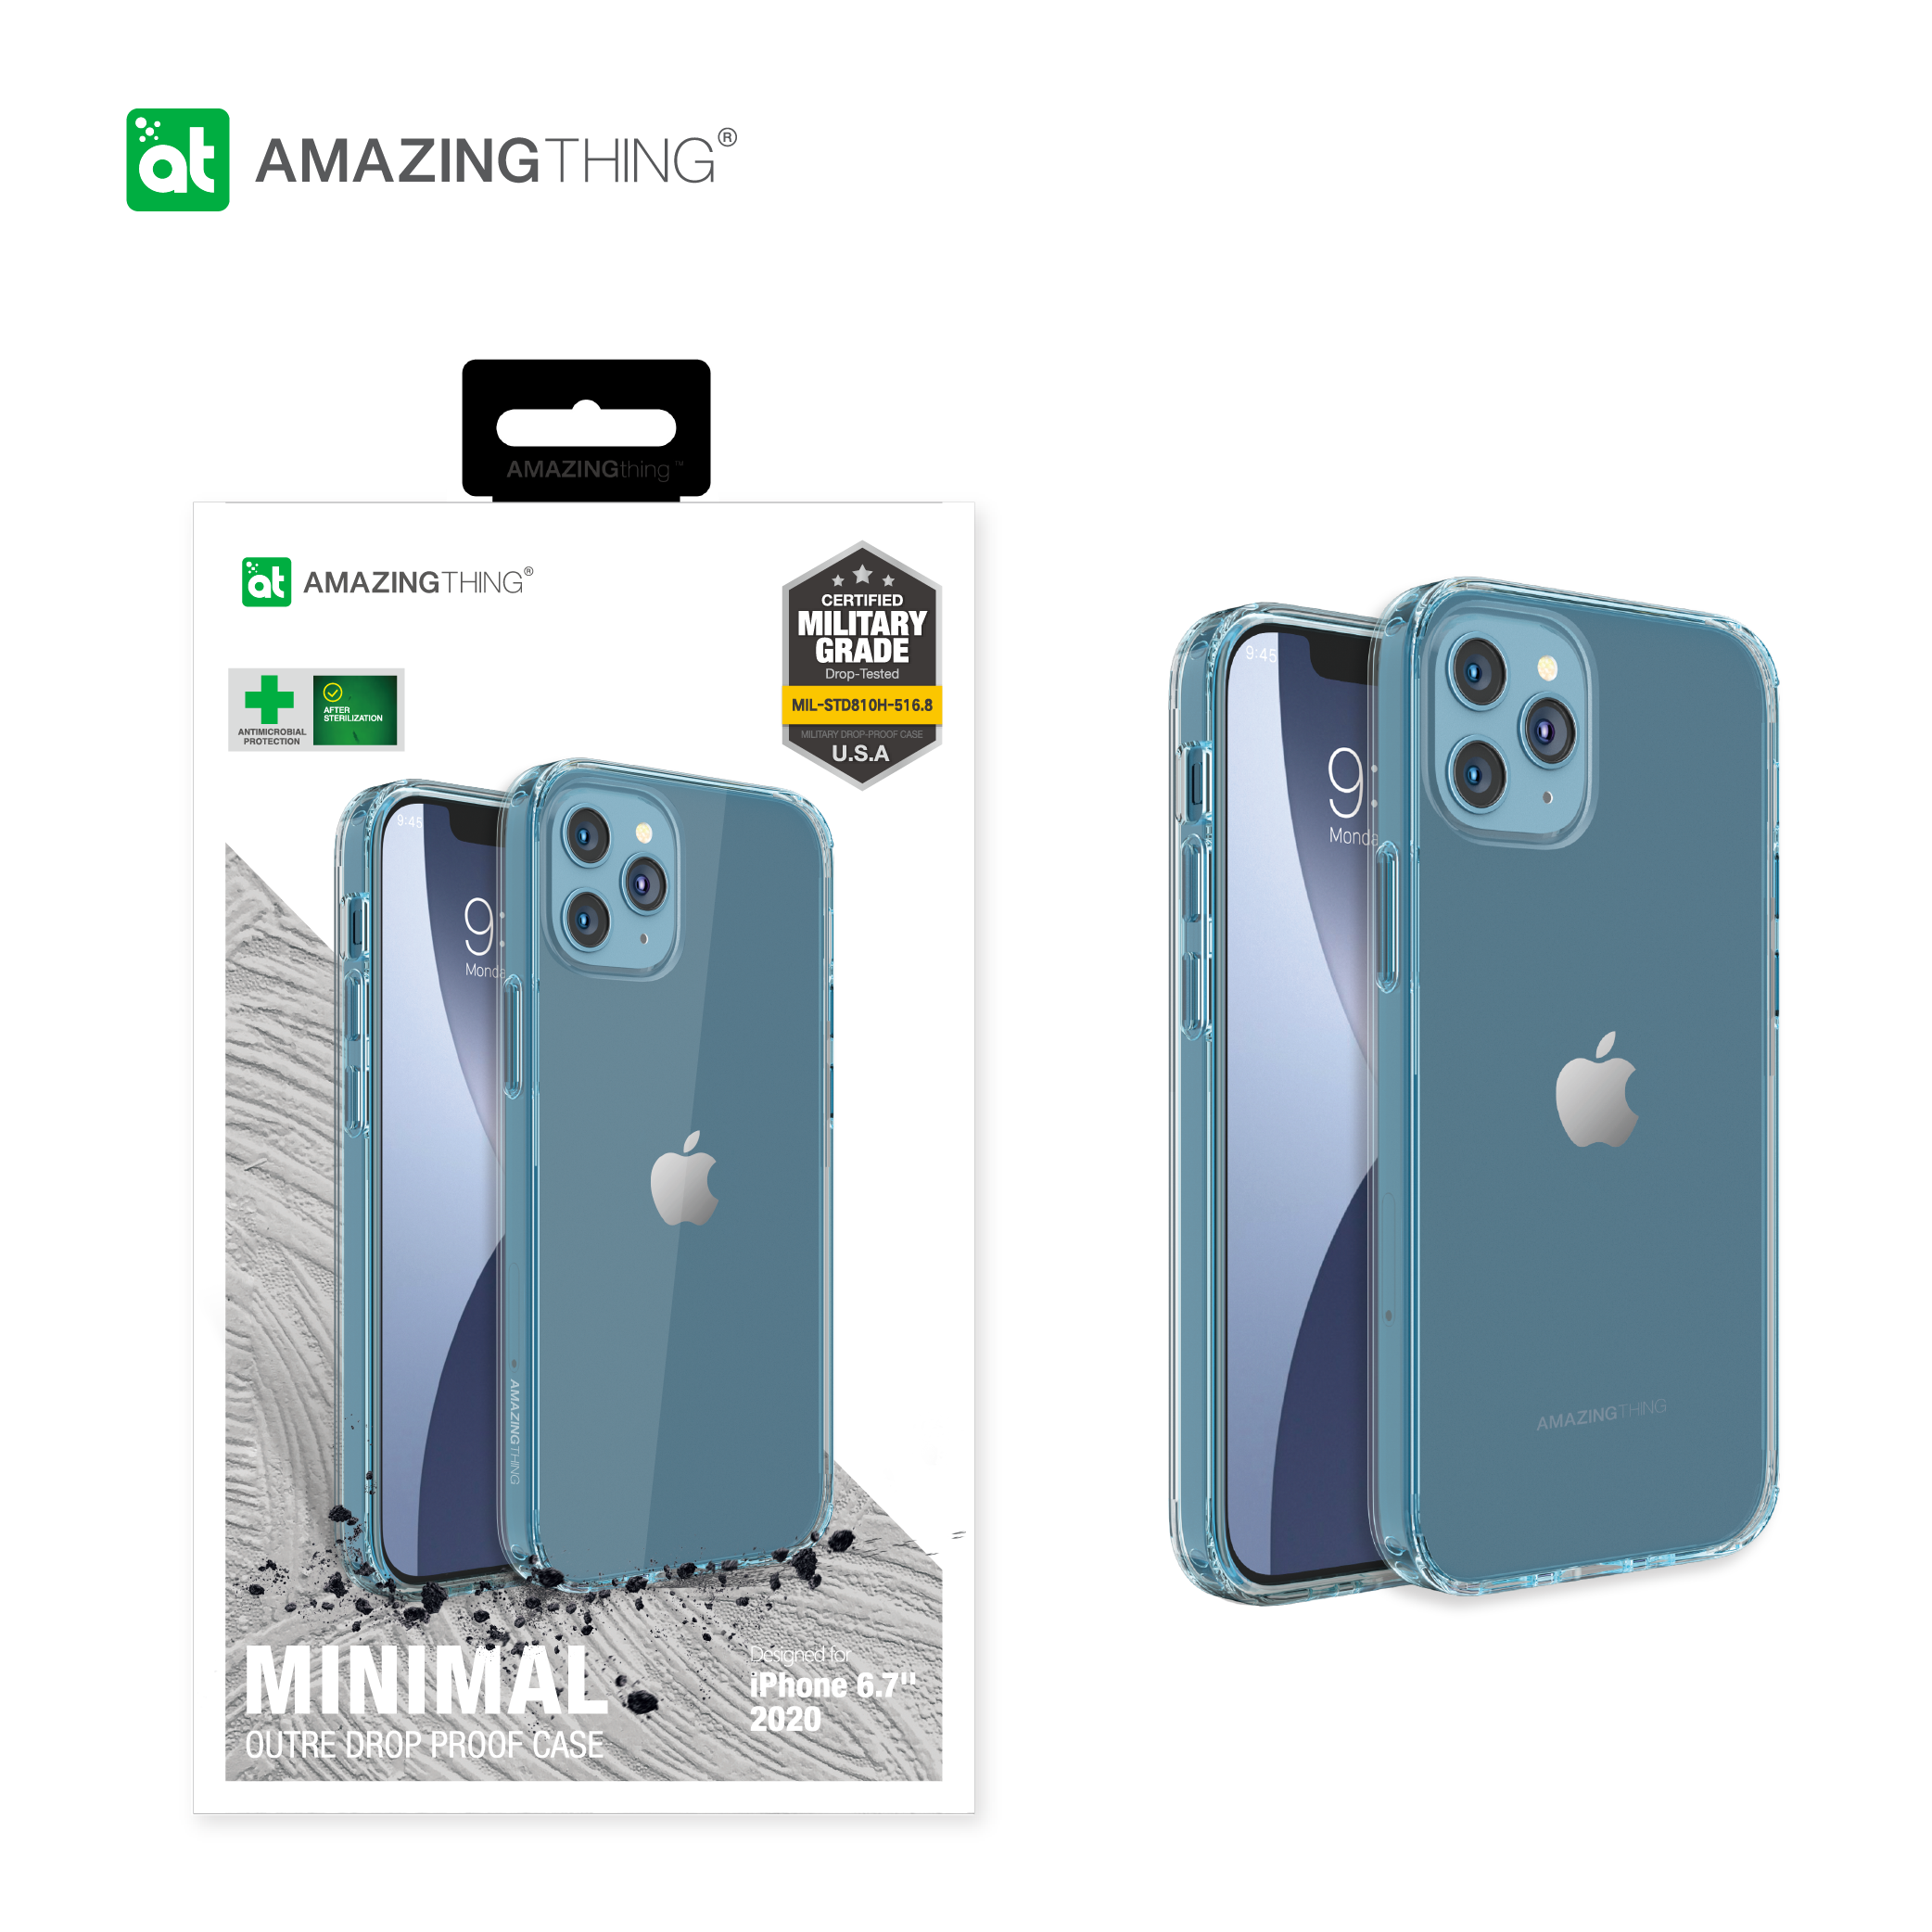 AMAZINGthing CASE Apple iPhone 12 Pro Max (2020) Anti-microbial Minimal Outre Drop proof